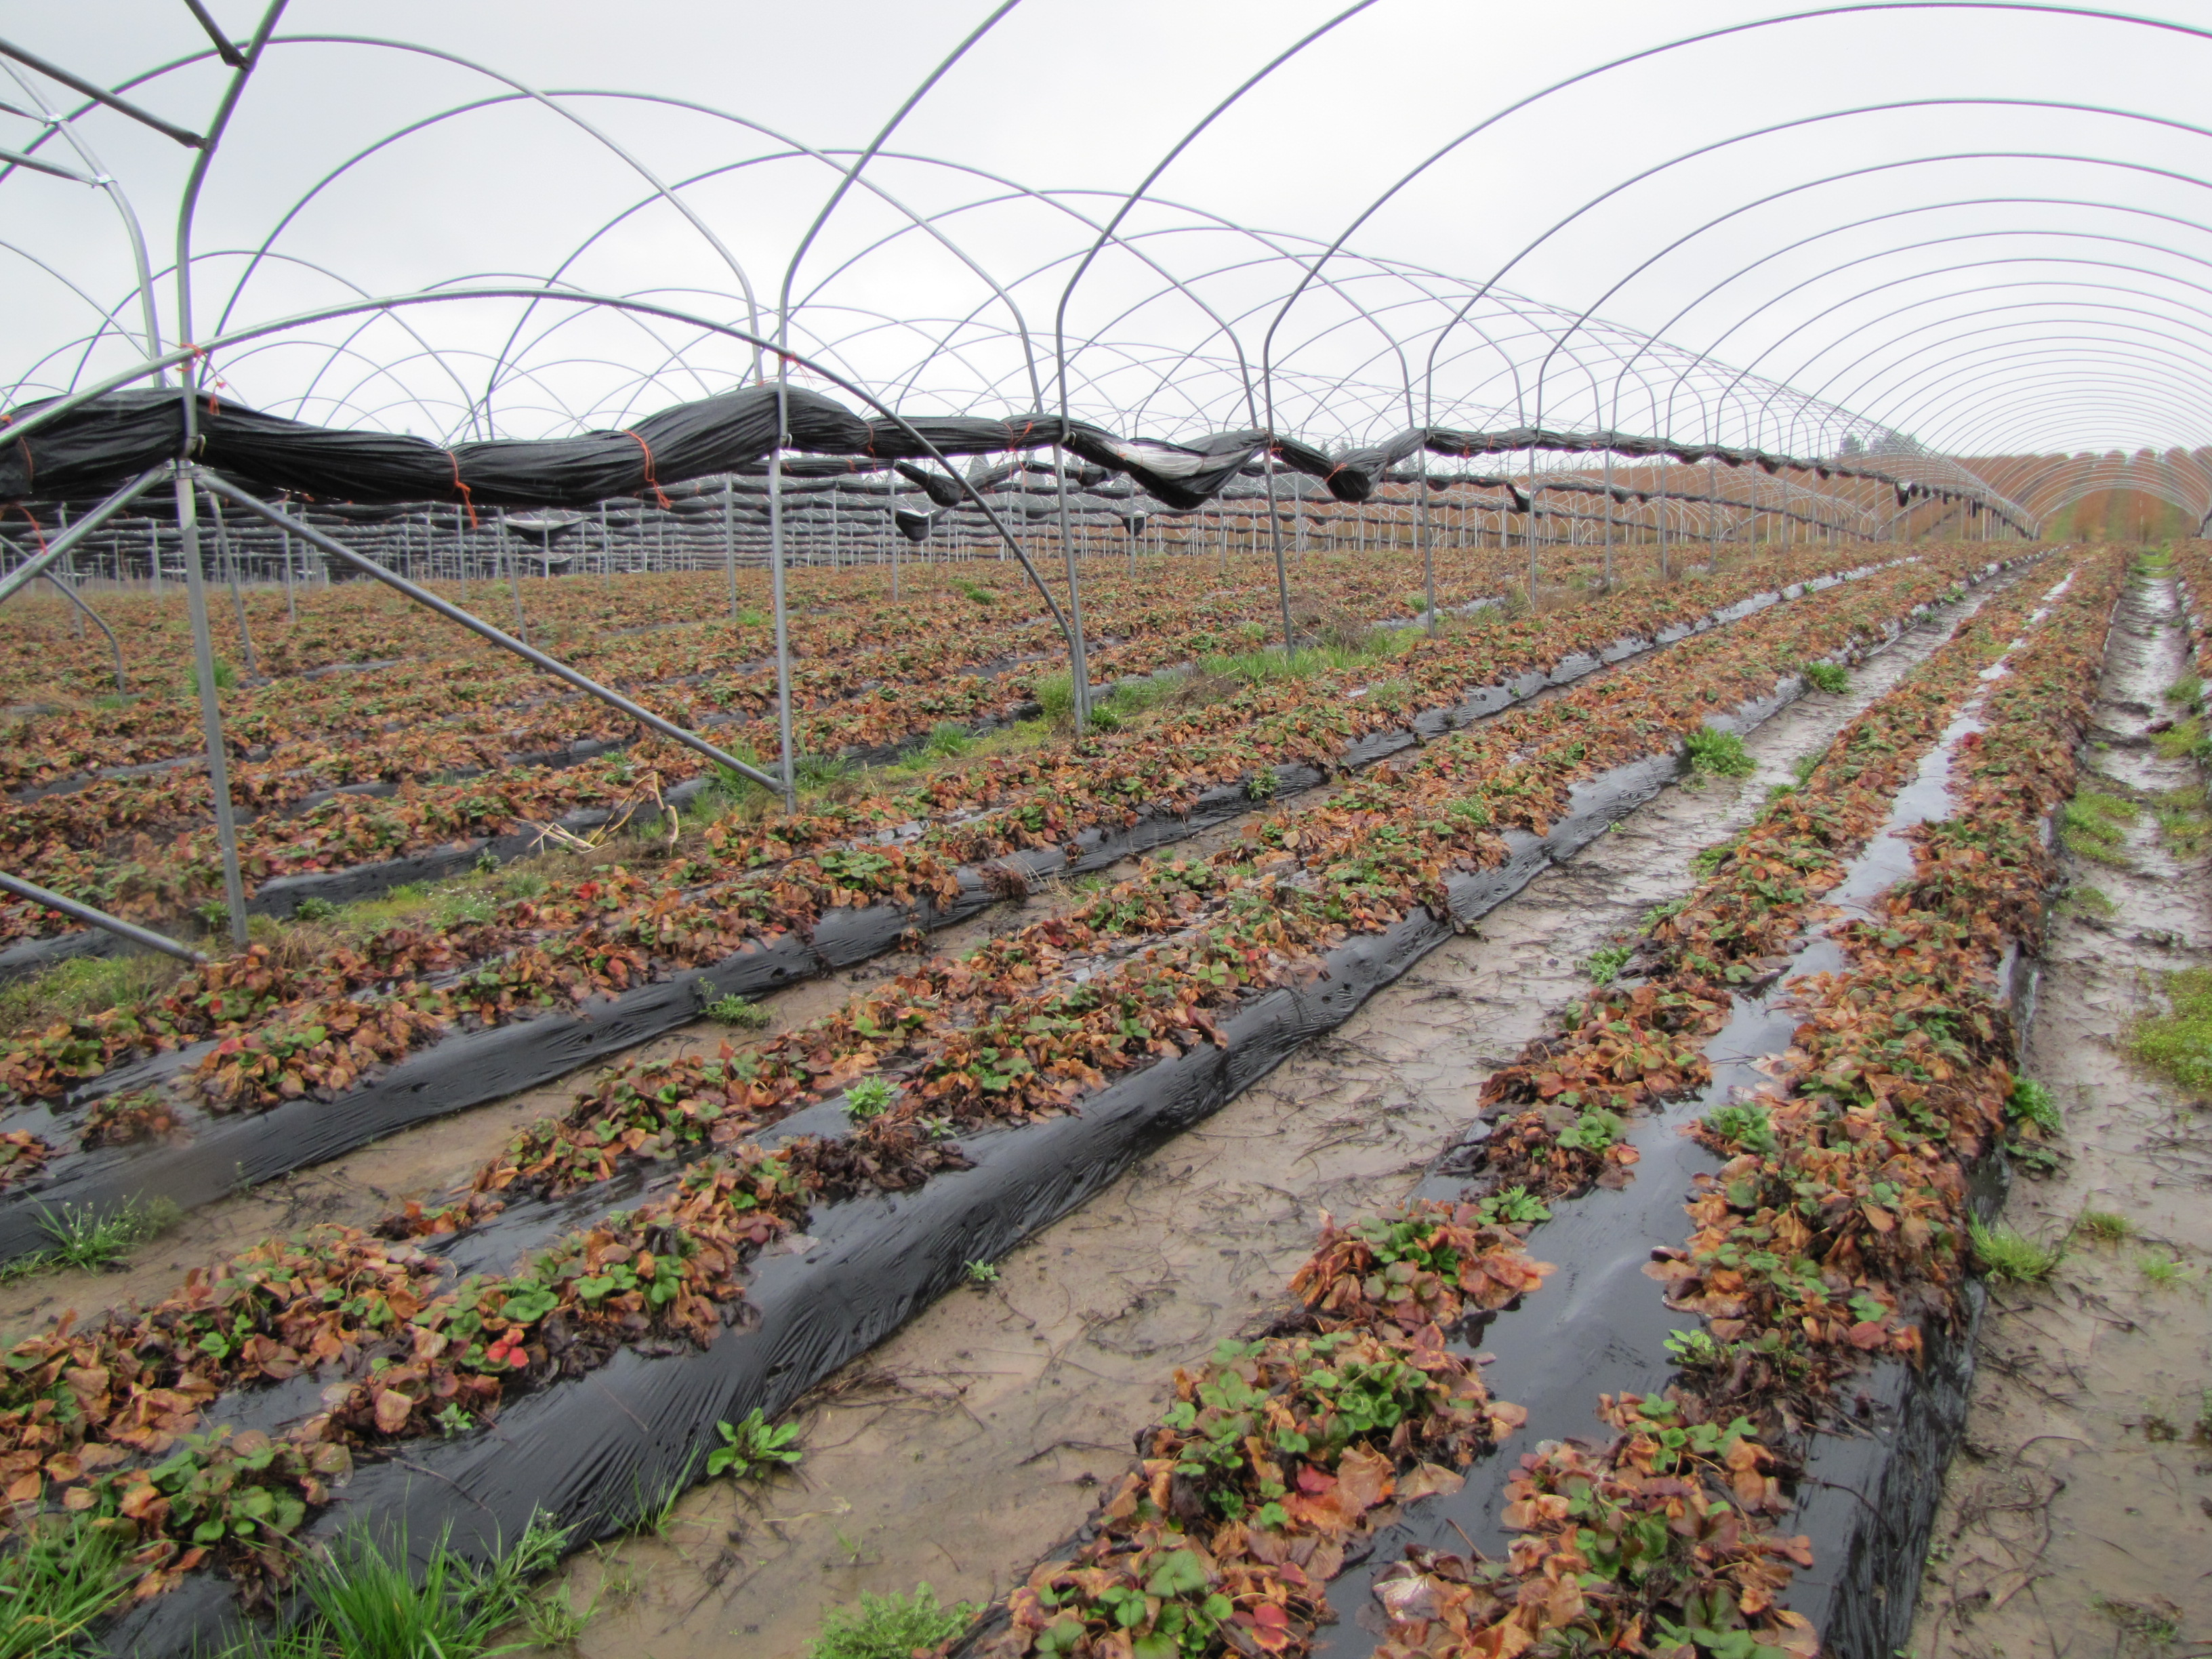 Figure 12. Strawberry growth in late winter (early March here) depends on stored nutrient reserves in the roots and crown. These are 'Albion' strawberries in Oregon.